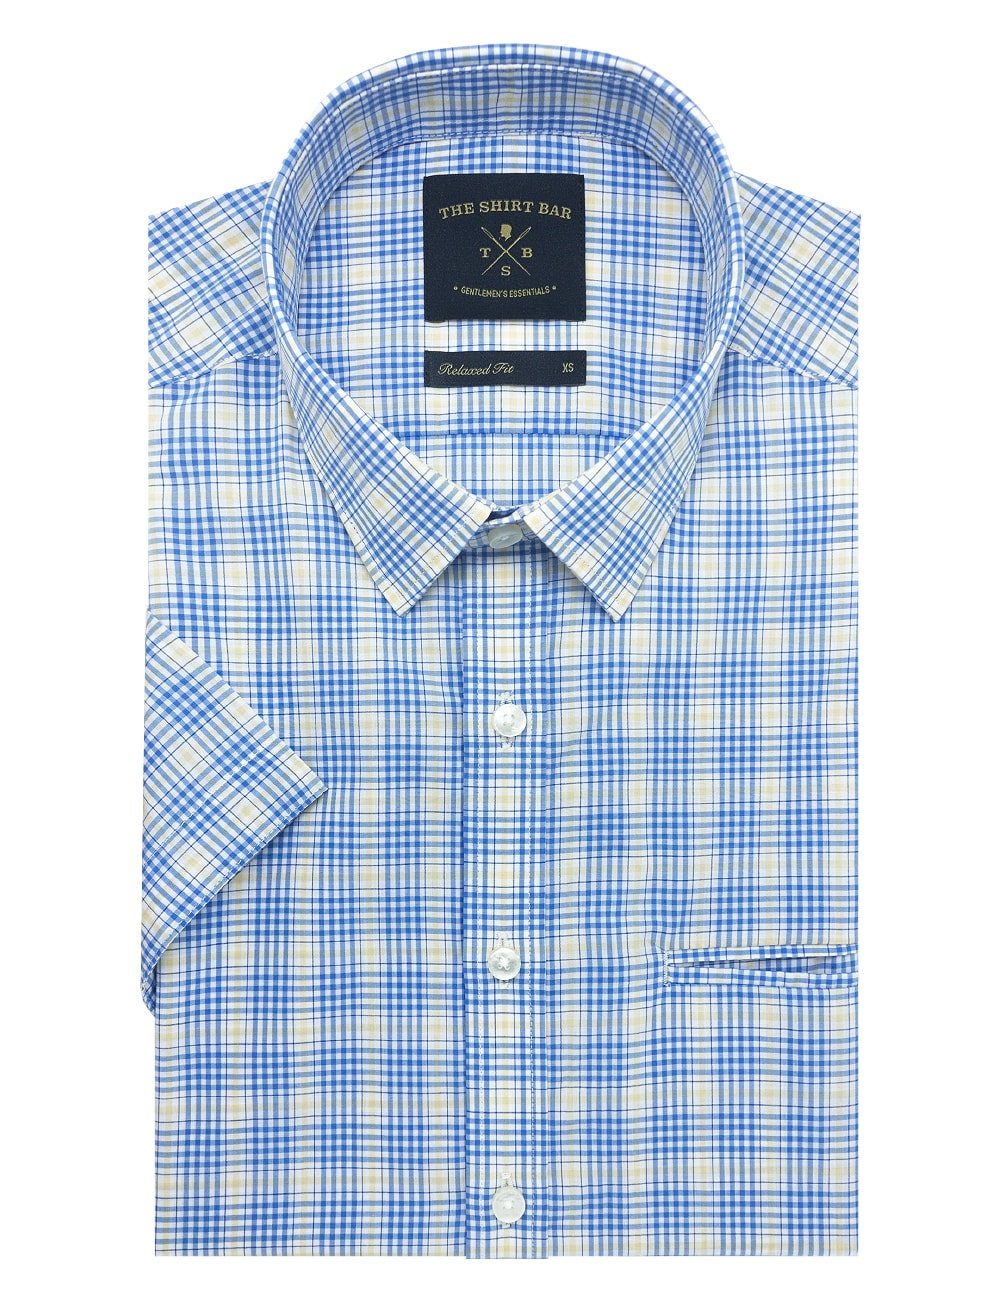 White with Blue and Yellow Checks Custom / Relaxed Short Sleeve Shirt – RF9SNB14.19